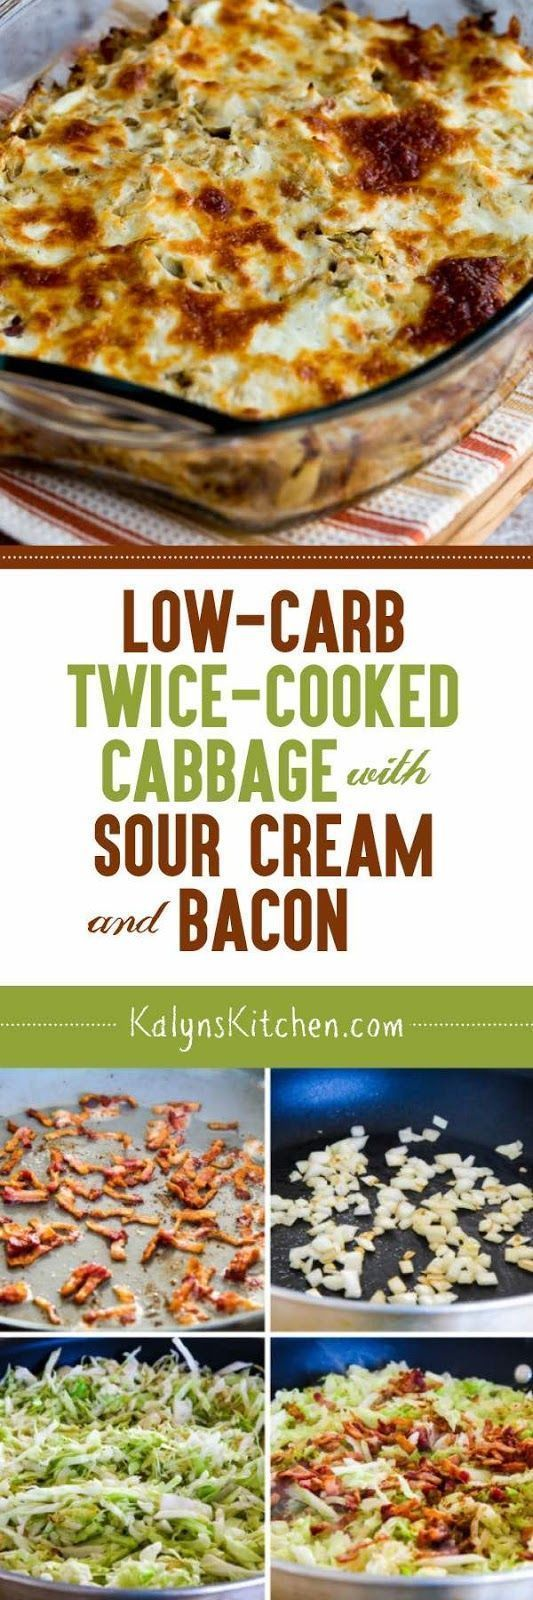 We swooned over this Low-Carb Twice-Cooked Cabbage with Sour Cream and Bacon when we tested the recipe, and this dish is also gluten-free. I'd eat it as an occasional treat for the South Beach Diet too, although South Beach would recommend turkey bacon. [found on www.kalynskitchen.com/] kalynskitchen.com